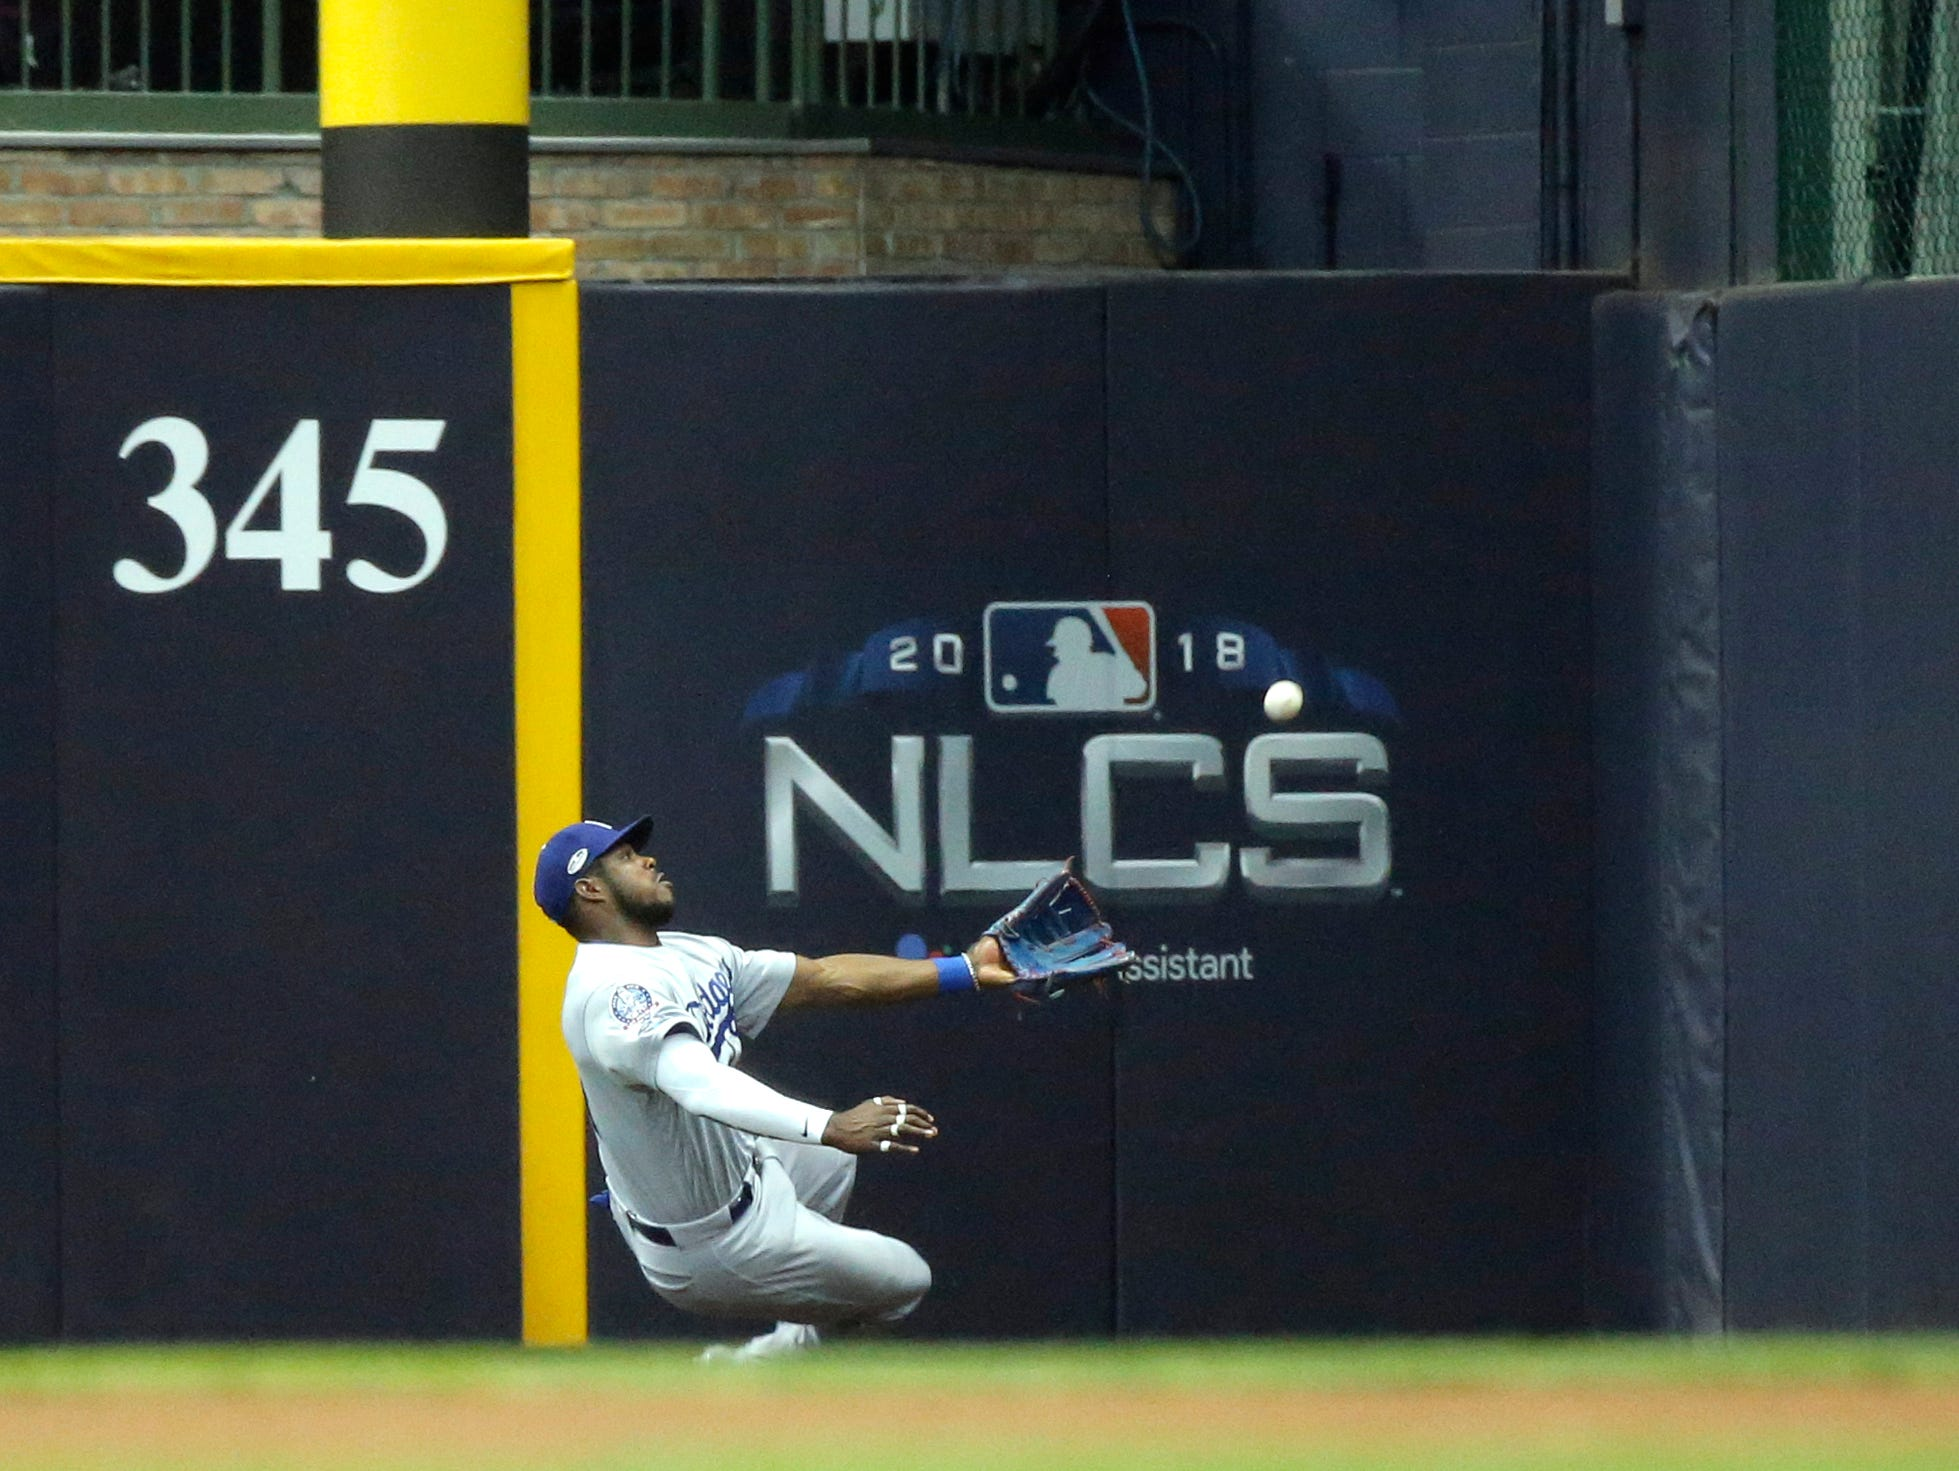 NLCS Game 6: Dodgers right fielder Yasiel Puig can't make a catch on a ball hit by Jesus Aguilar in the seventh inning.